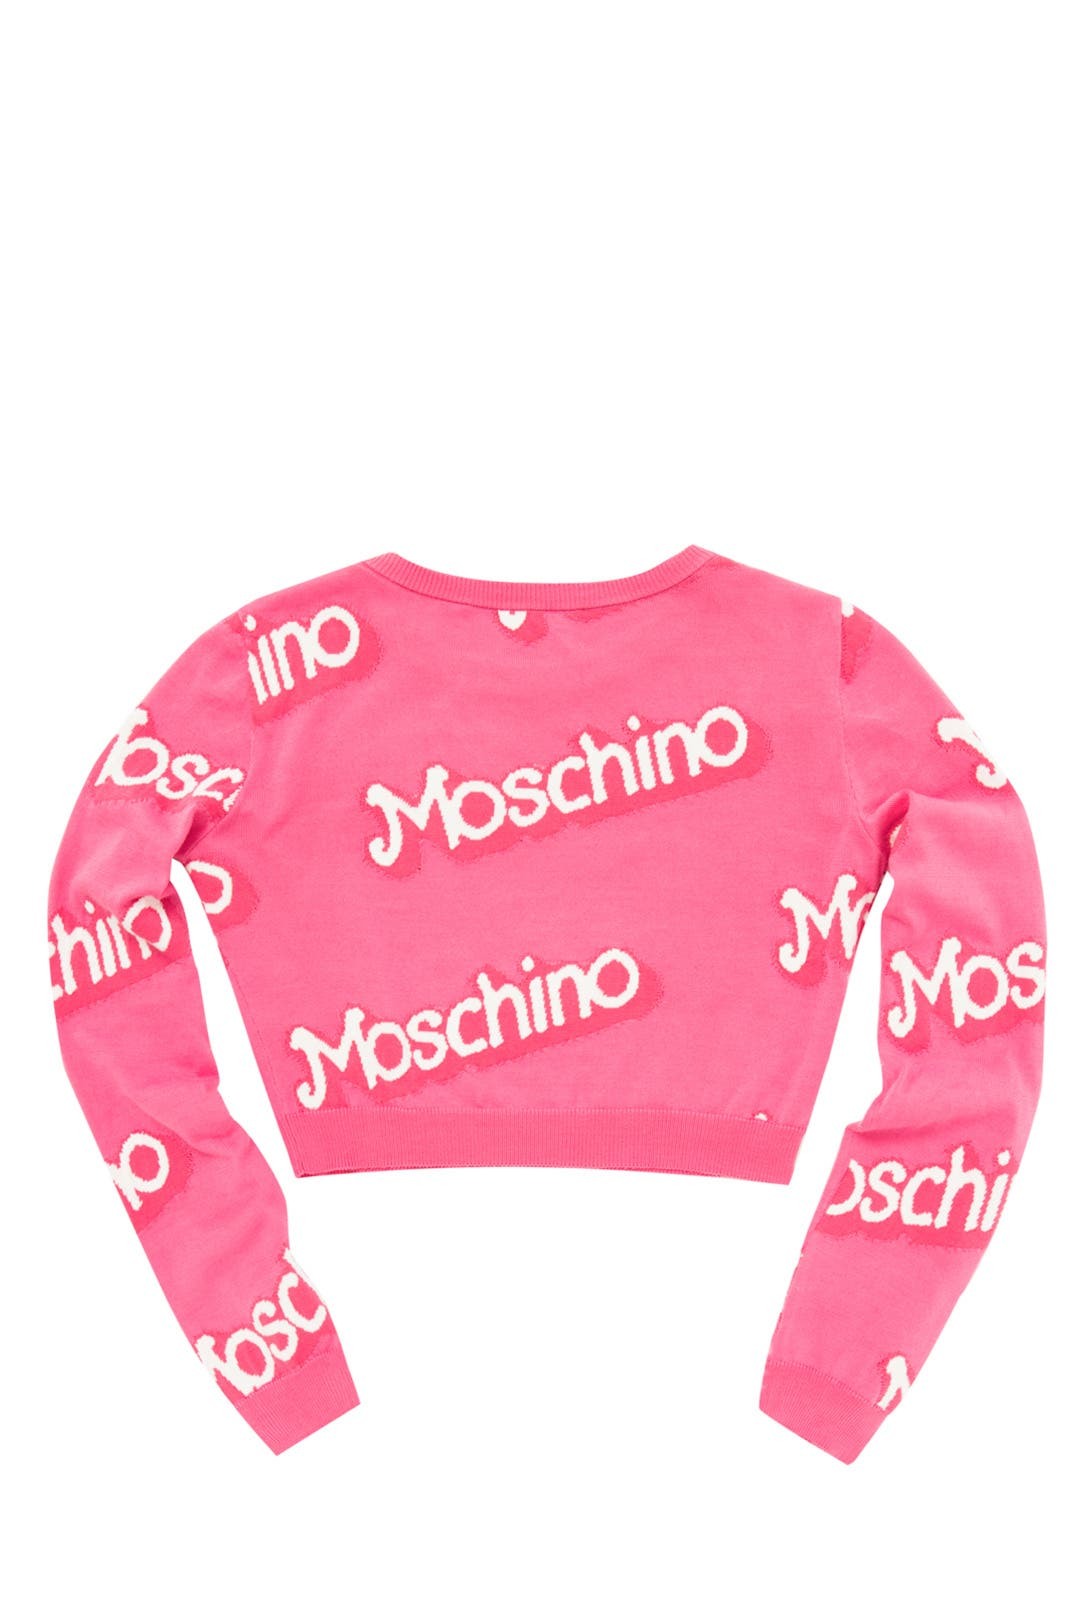 Think Pink Cropped Sweater by Moschino for $104 | Rent the Runway